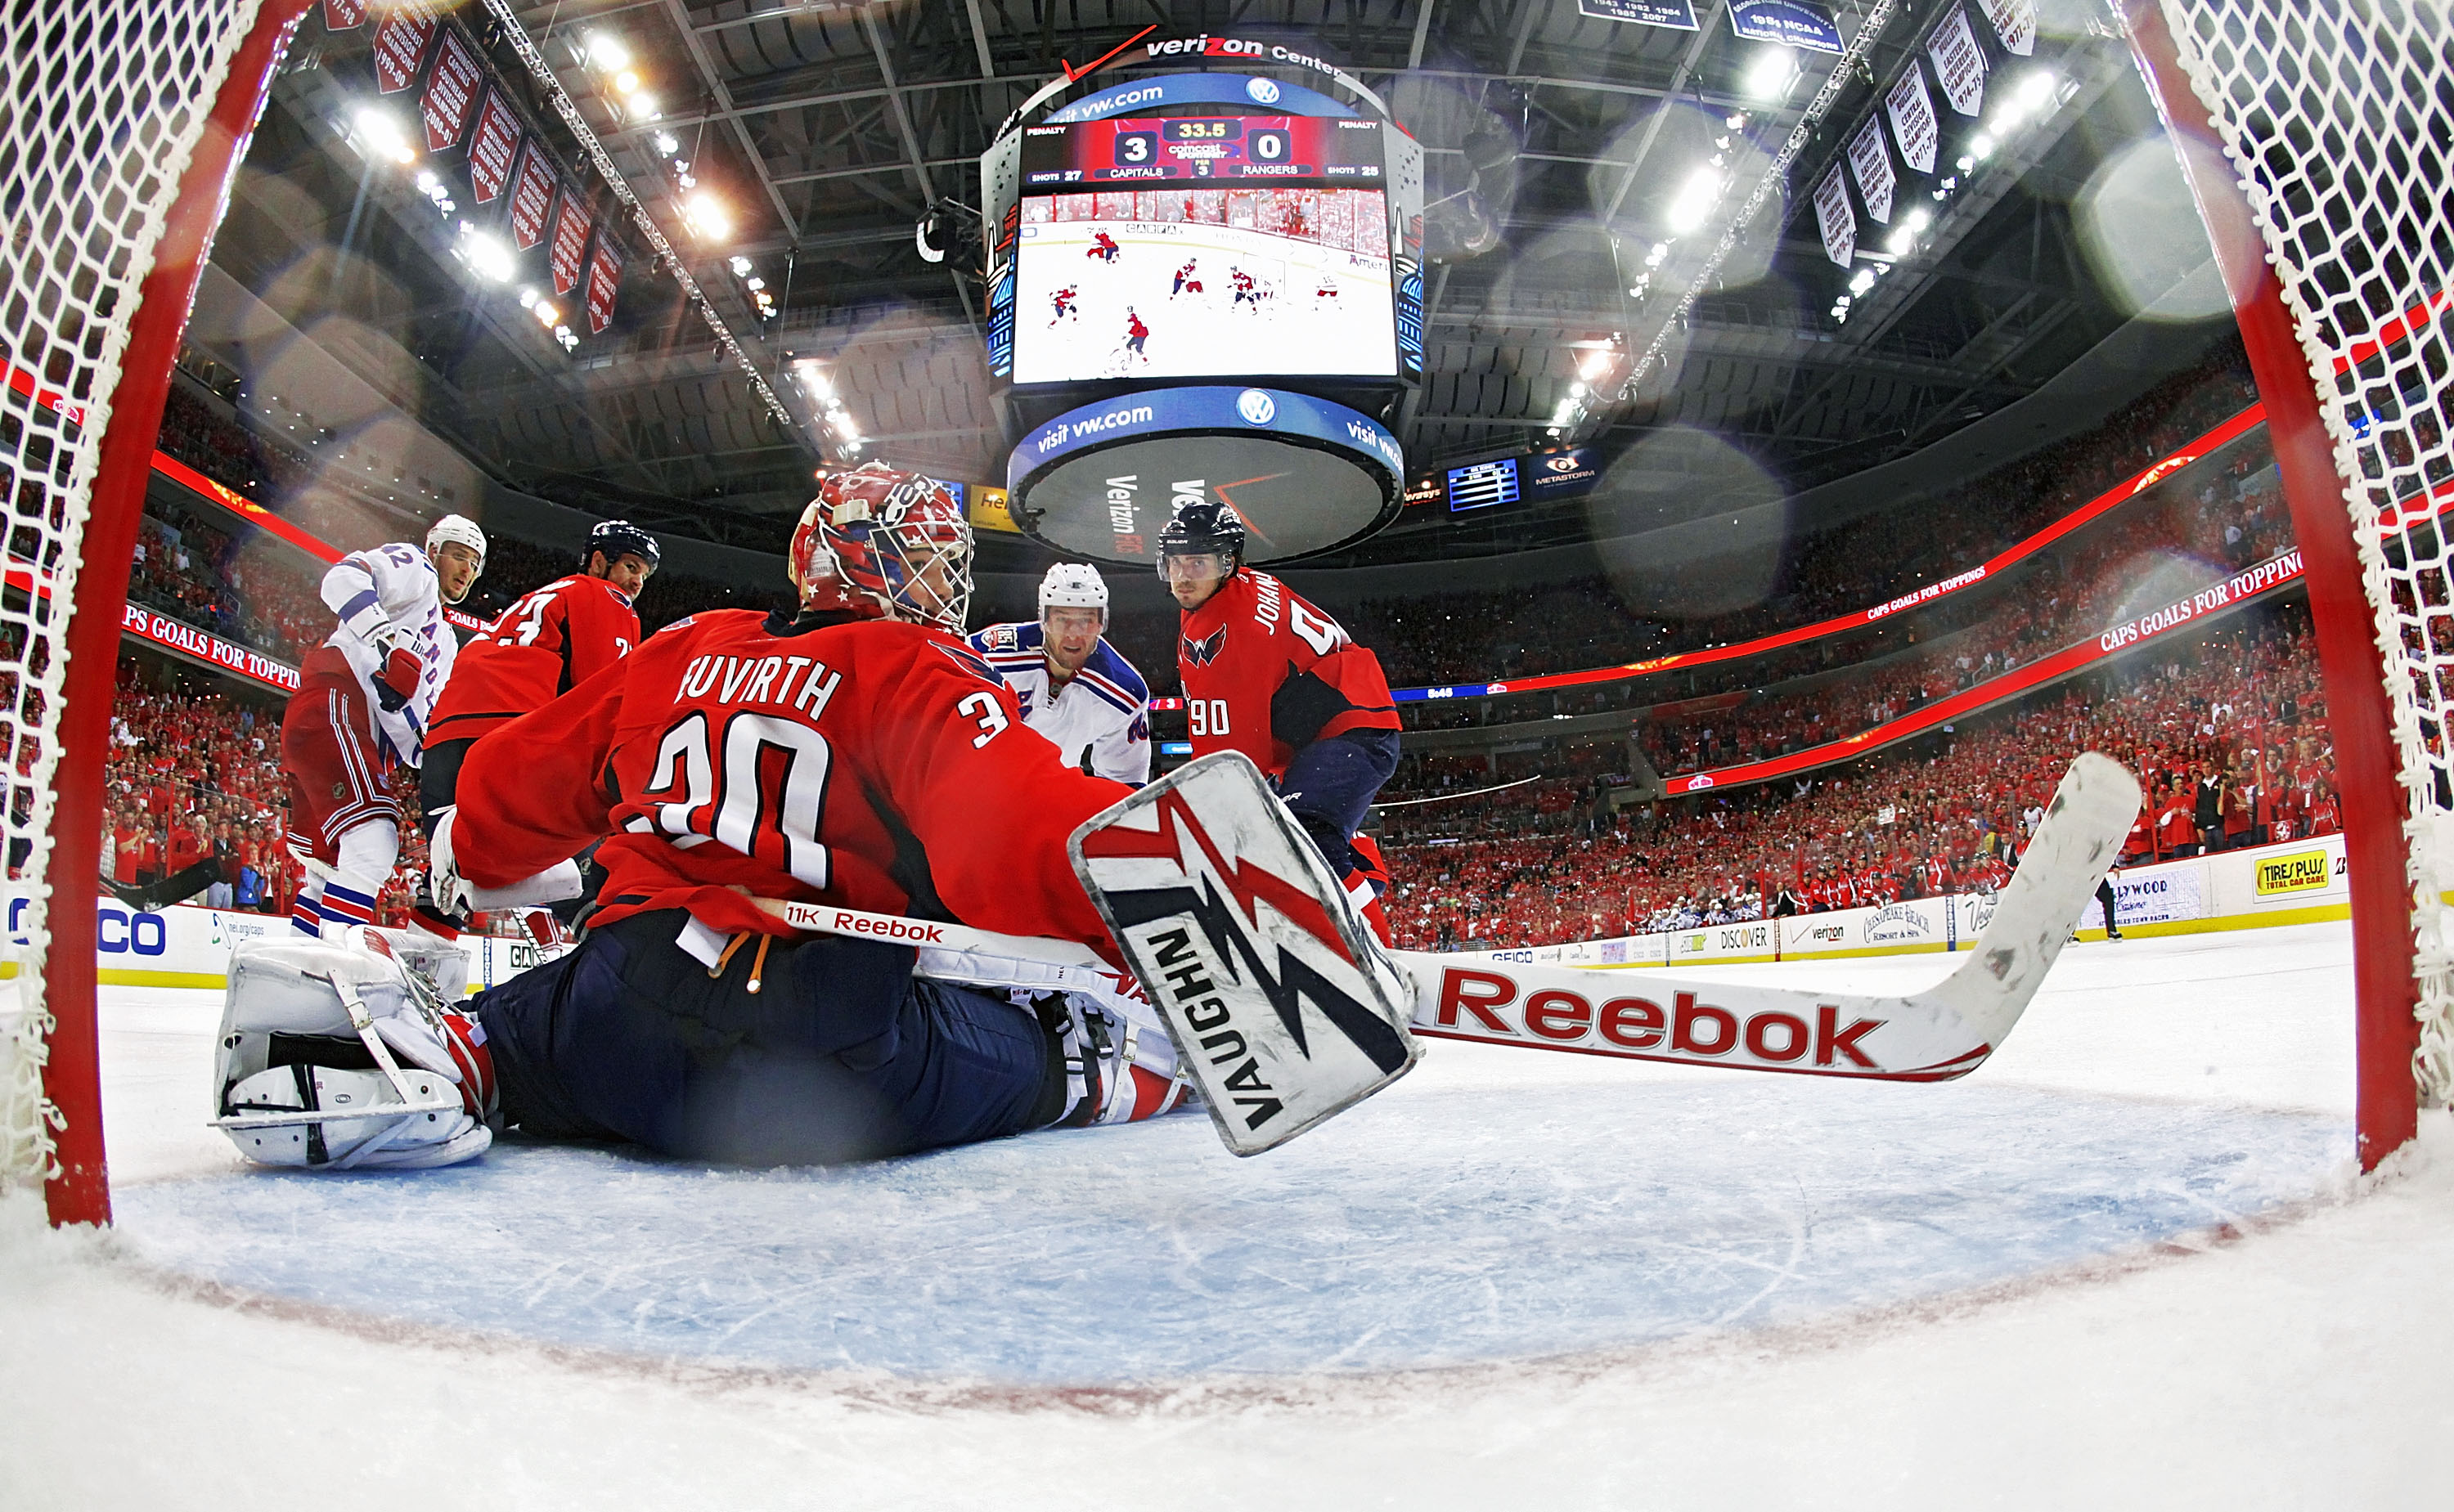 WASHINGTON, DC - APRIL 23:  Michal Neuvirth #30 of the Washington Capitals watches the only goal of the New York Rangers sail into the net in Game Five of the Eastern Conference Quarterfinals during the 2011 NHL Stanley Cup Playoffs at the Verizon Center